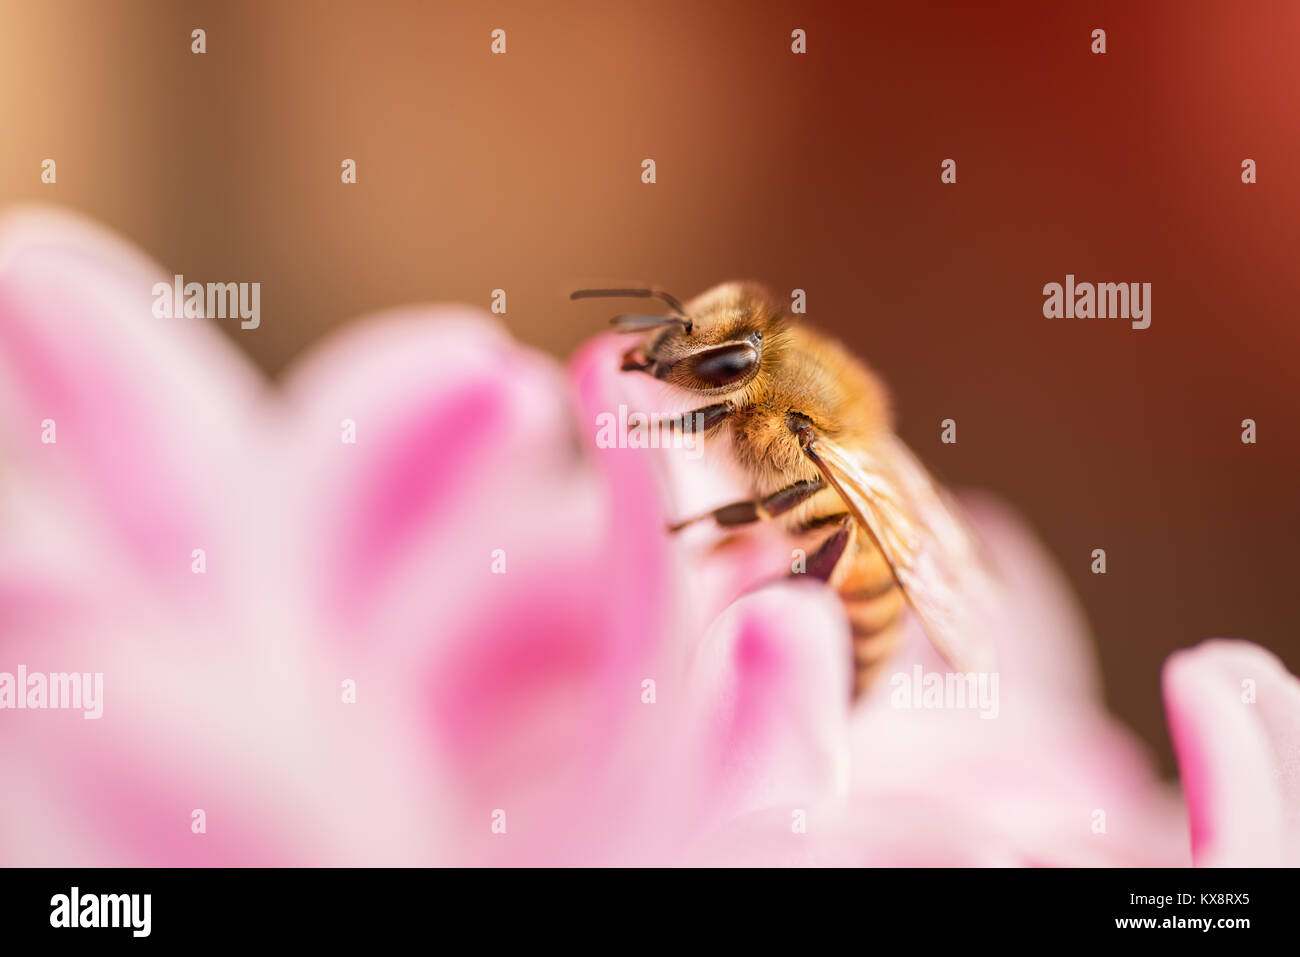 honey bee collecting nectar from a flower - Stock Image